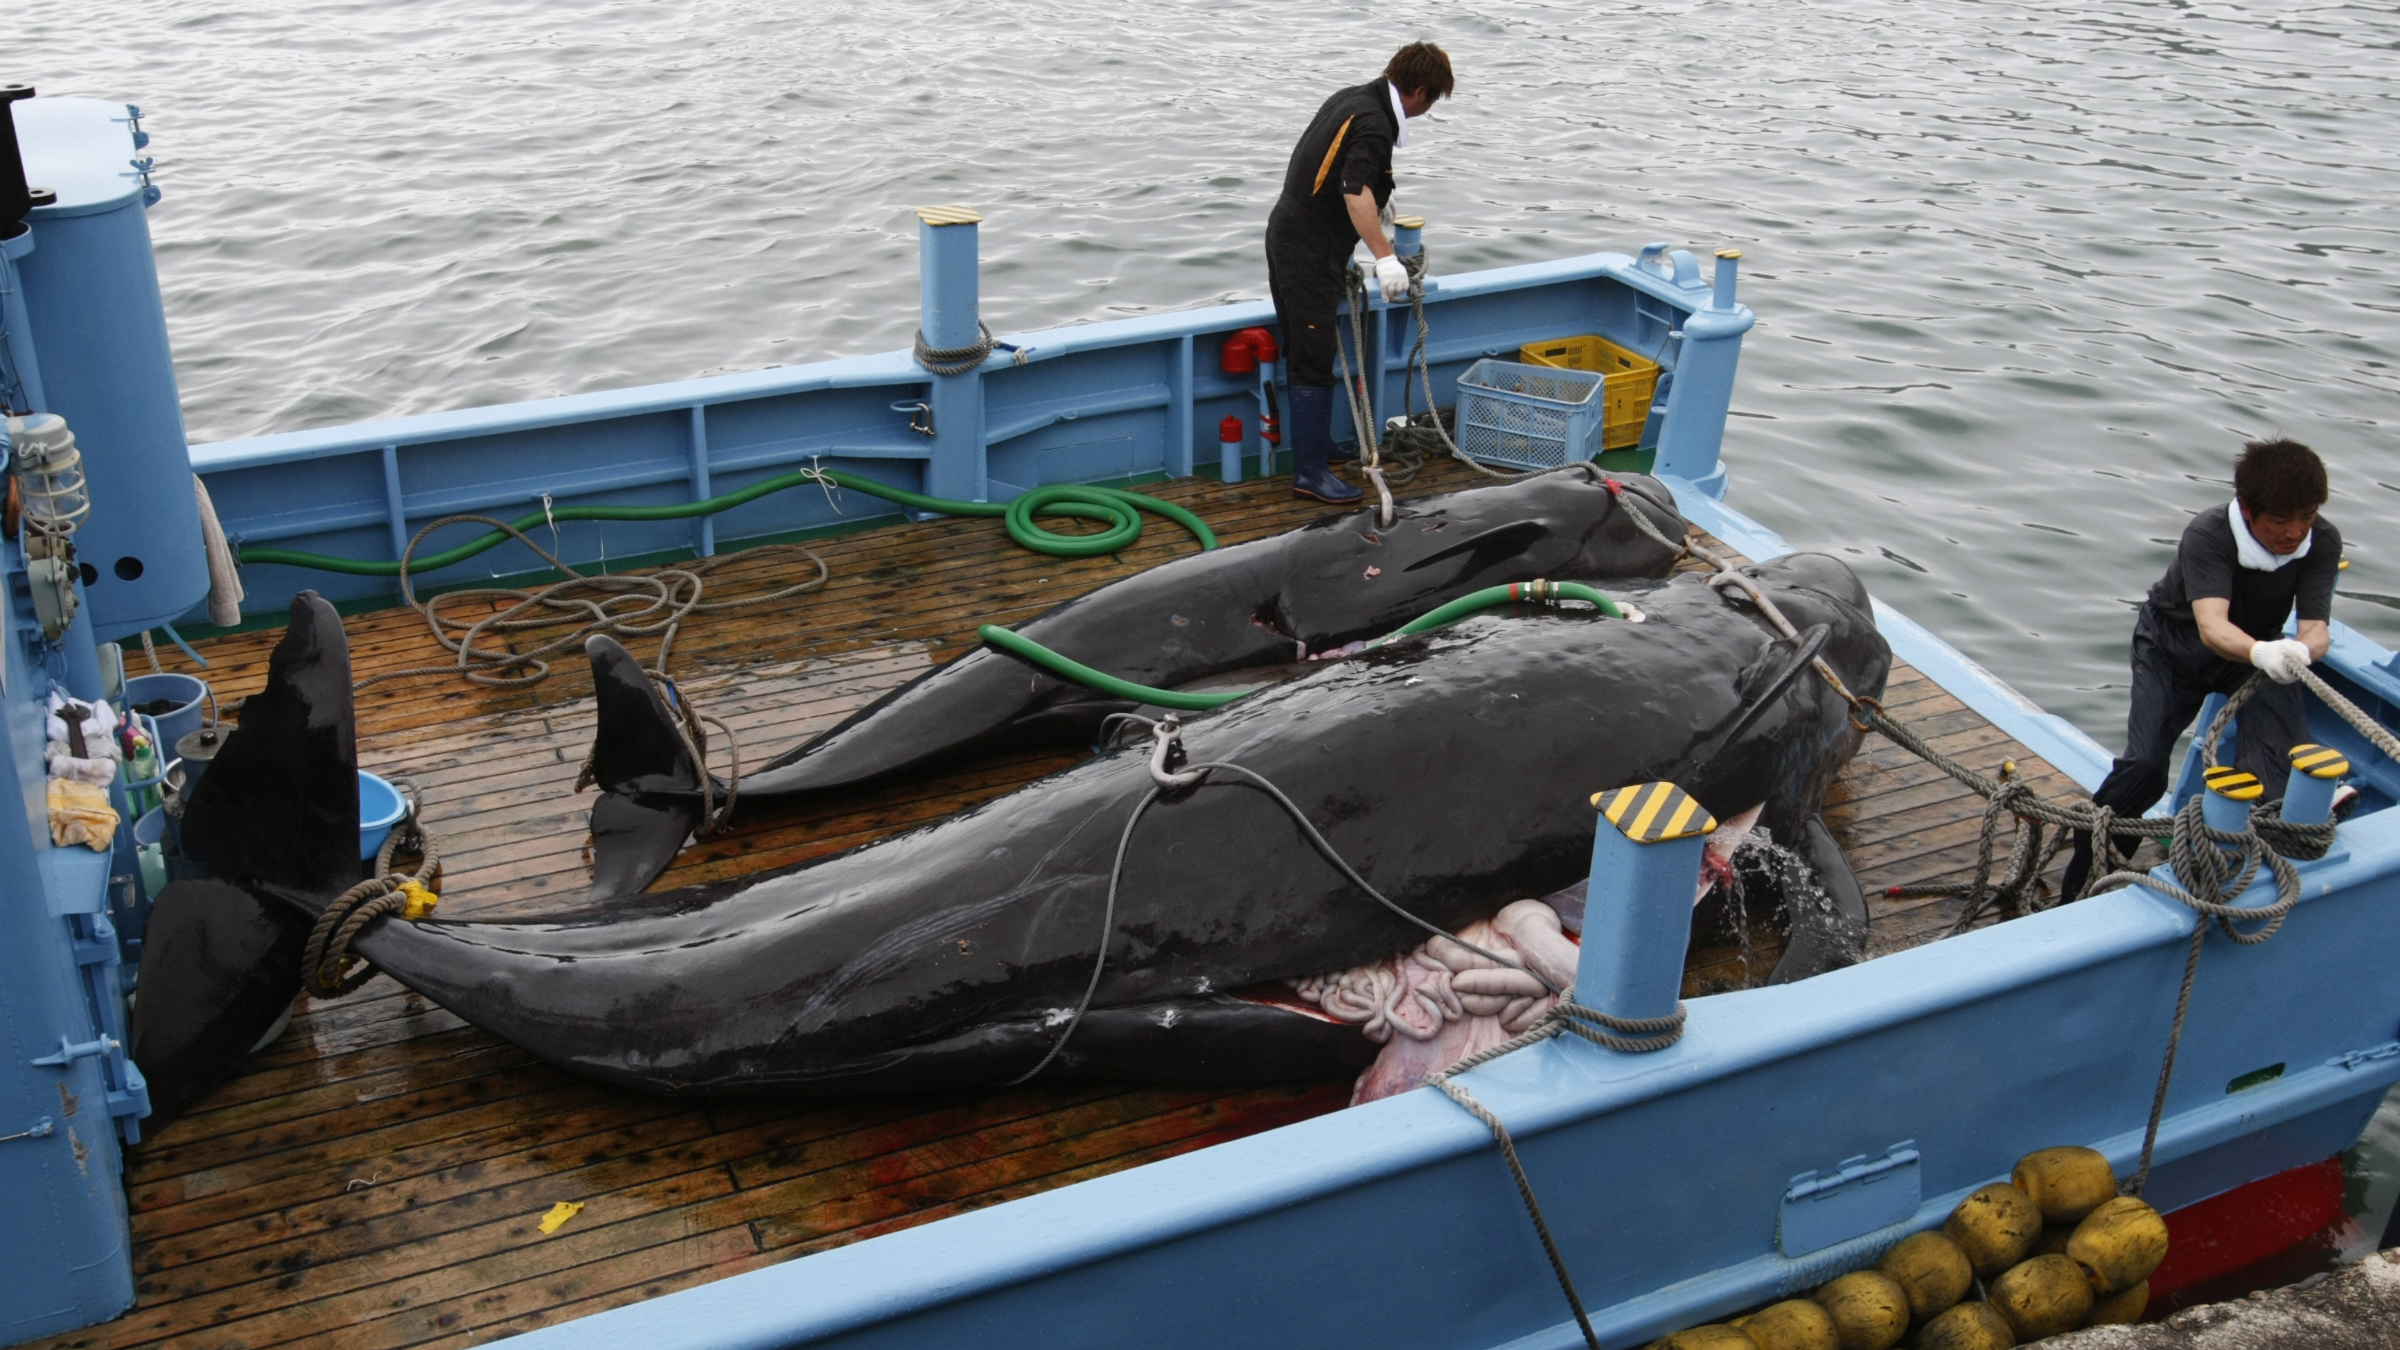 Captured short-finned pilot whales are seen on the deck of a whaling ship at Taiji Port in Japan's oldest whaling village of Taiji, 420 km (260 miles) southwest of Tokyo June 4, 2008. Harsh criticism from conservationists and foreign countries, and changing appetites at home, threaten the whalers' way of life which they say stretch back 400 years. The International Whaling Commission (IWC) banned commercial whaling in 1986, but is now bitterly divided between countries such as Australia that say all whales still need protection, and those such as Japan that argue some species are abundant enough for limited hunting. Picture taken June 4, 2008. To match feature WHALING/JAPAN REUTERS/Issei Kato